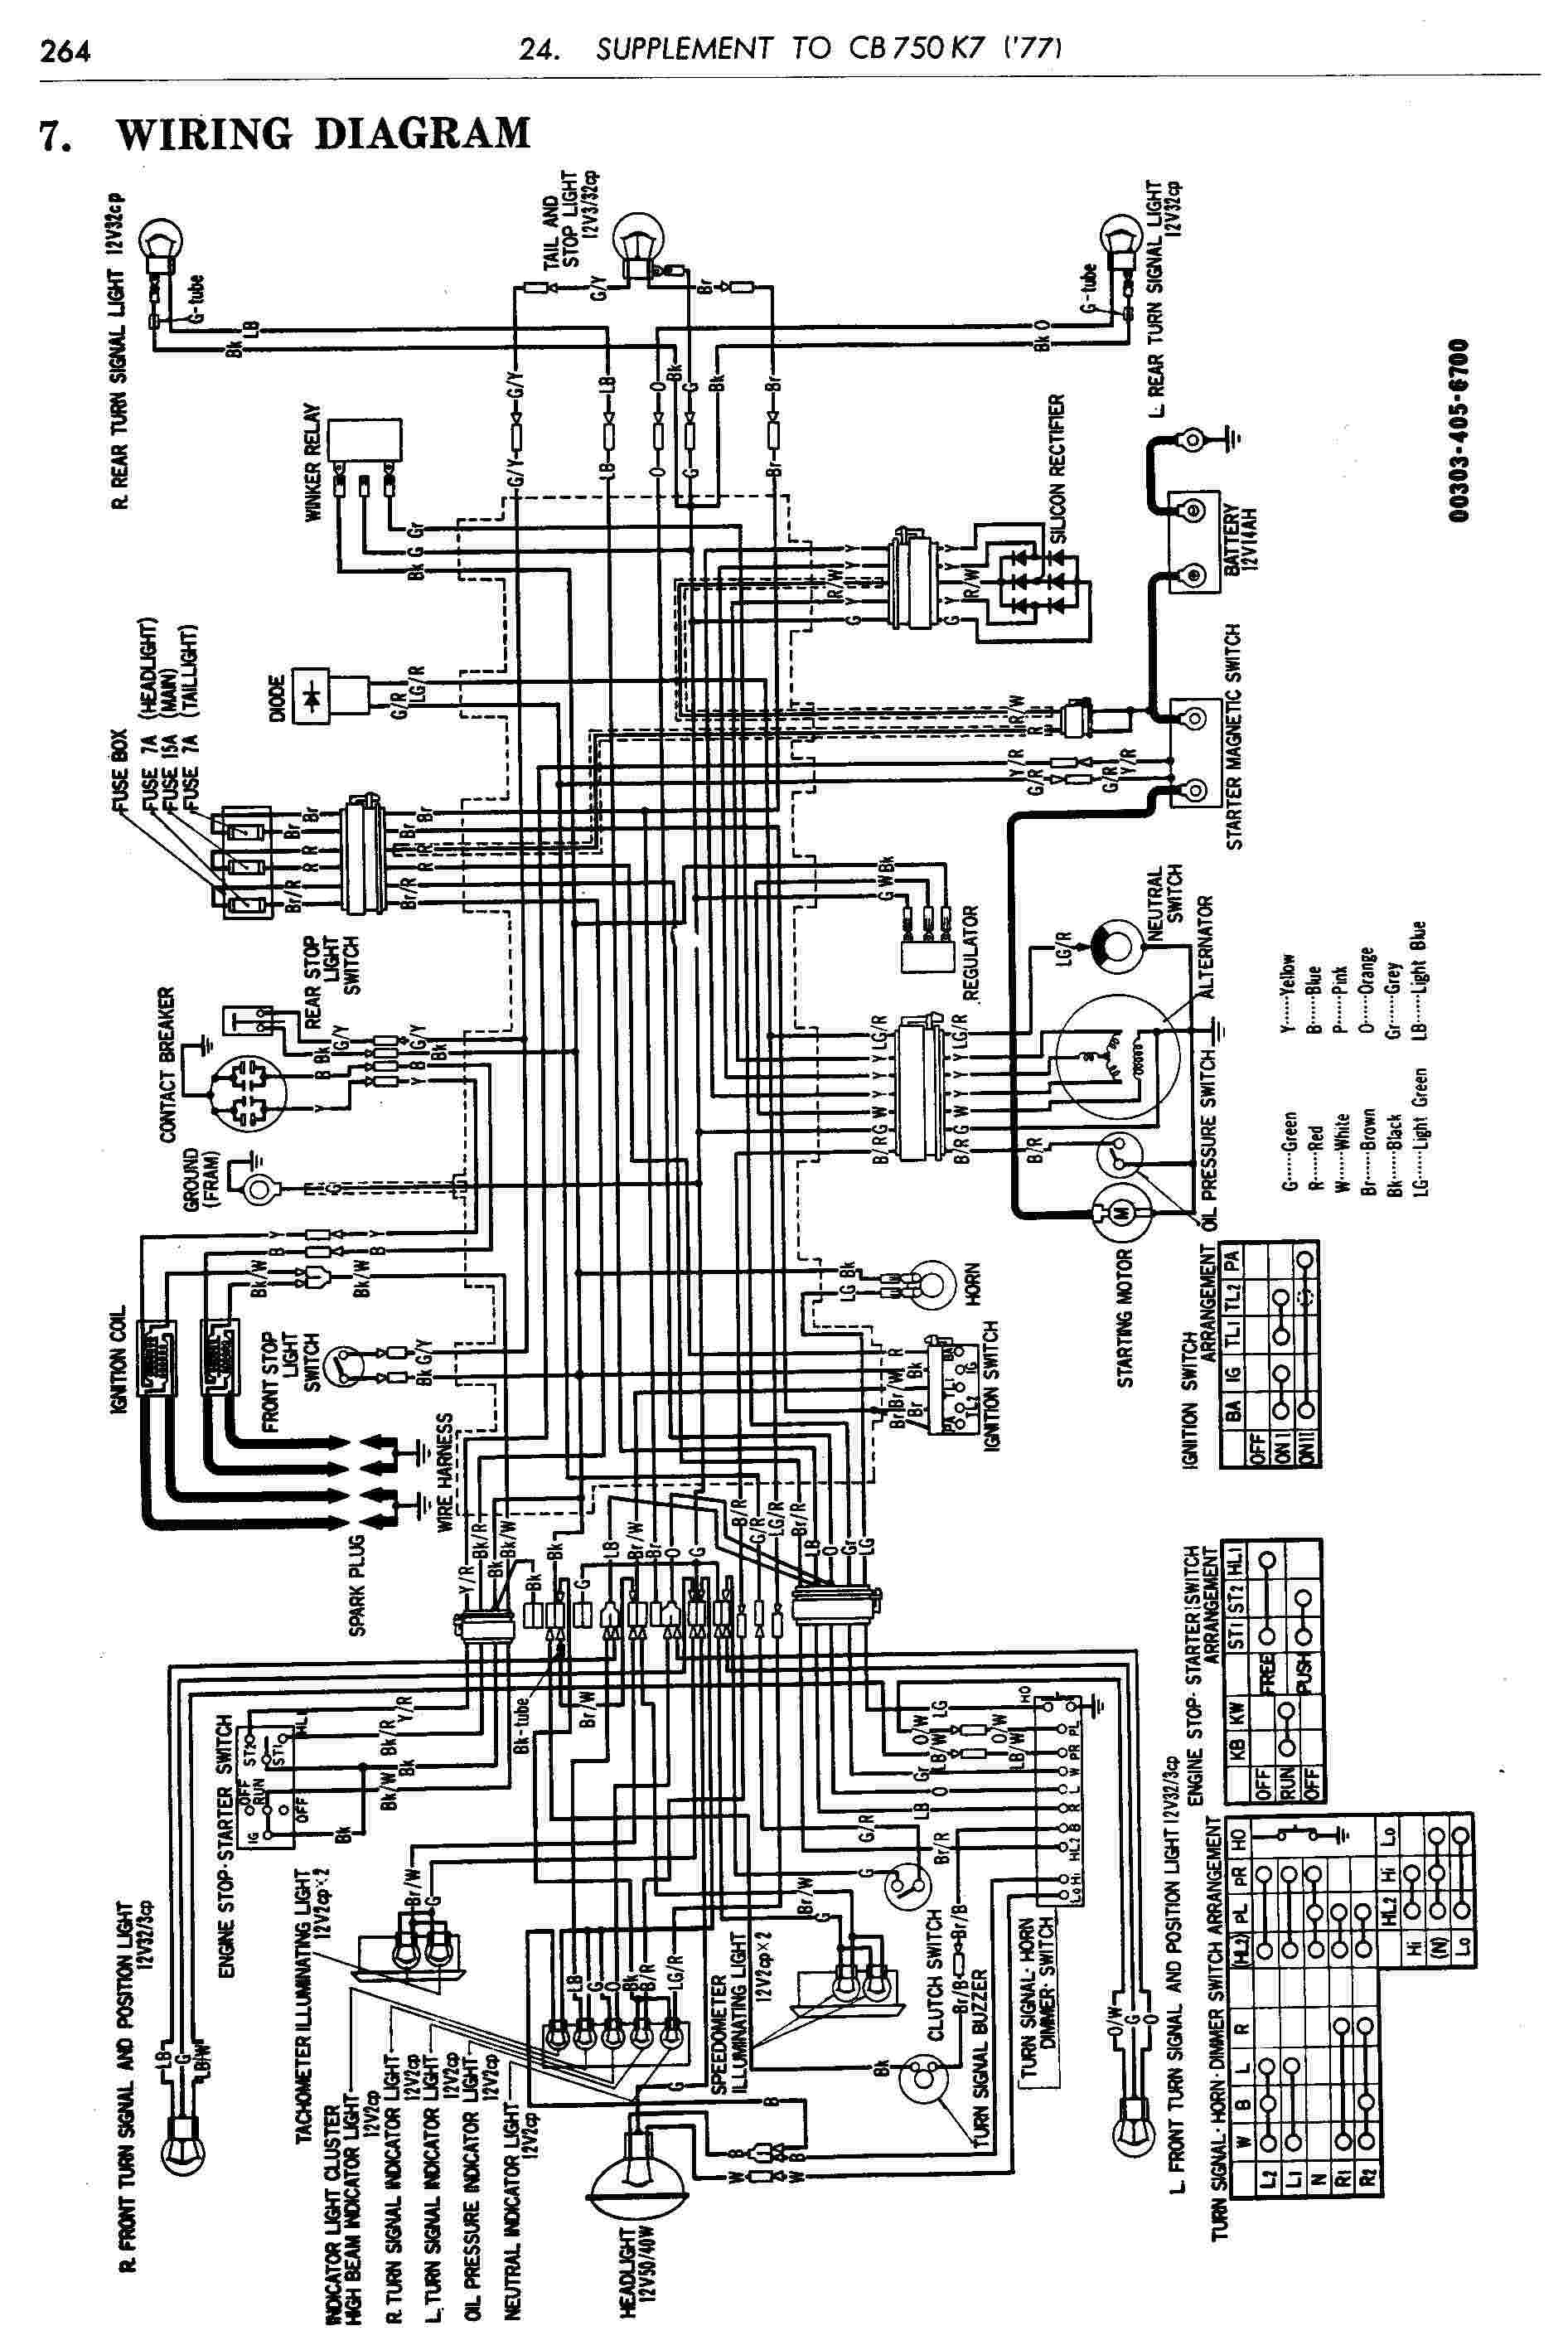 cb 750 f2 wiring diagram 1973 cb 750 honda wiring diagram